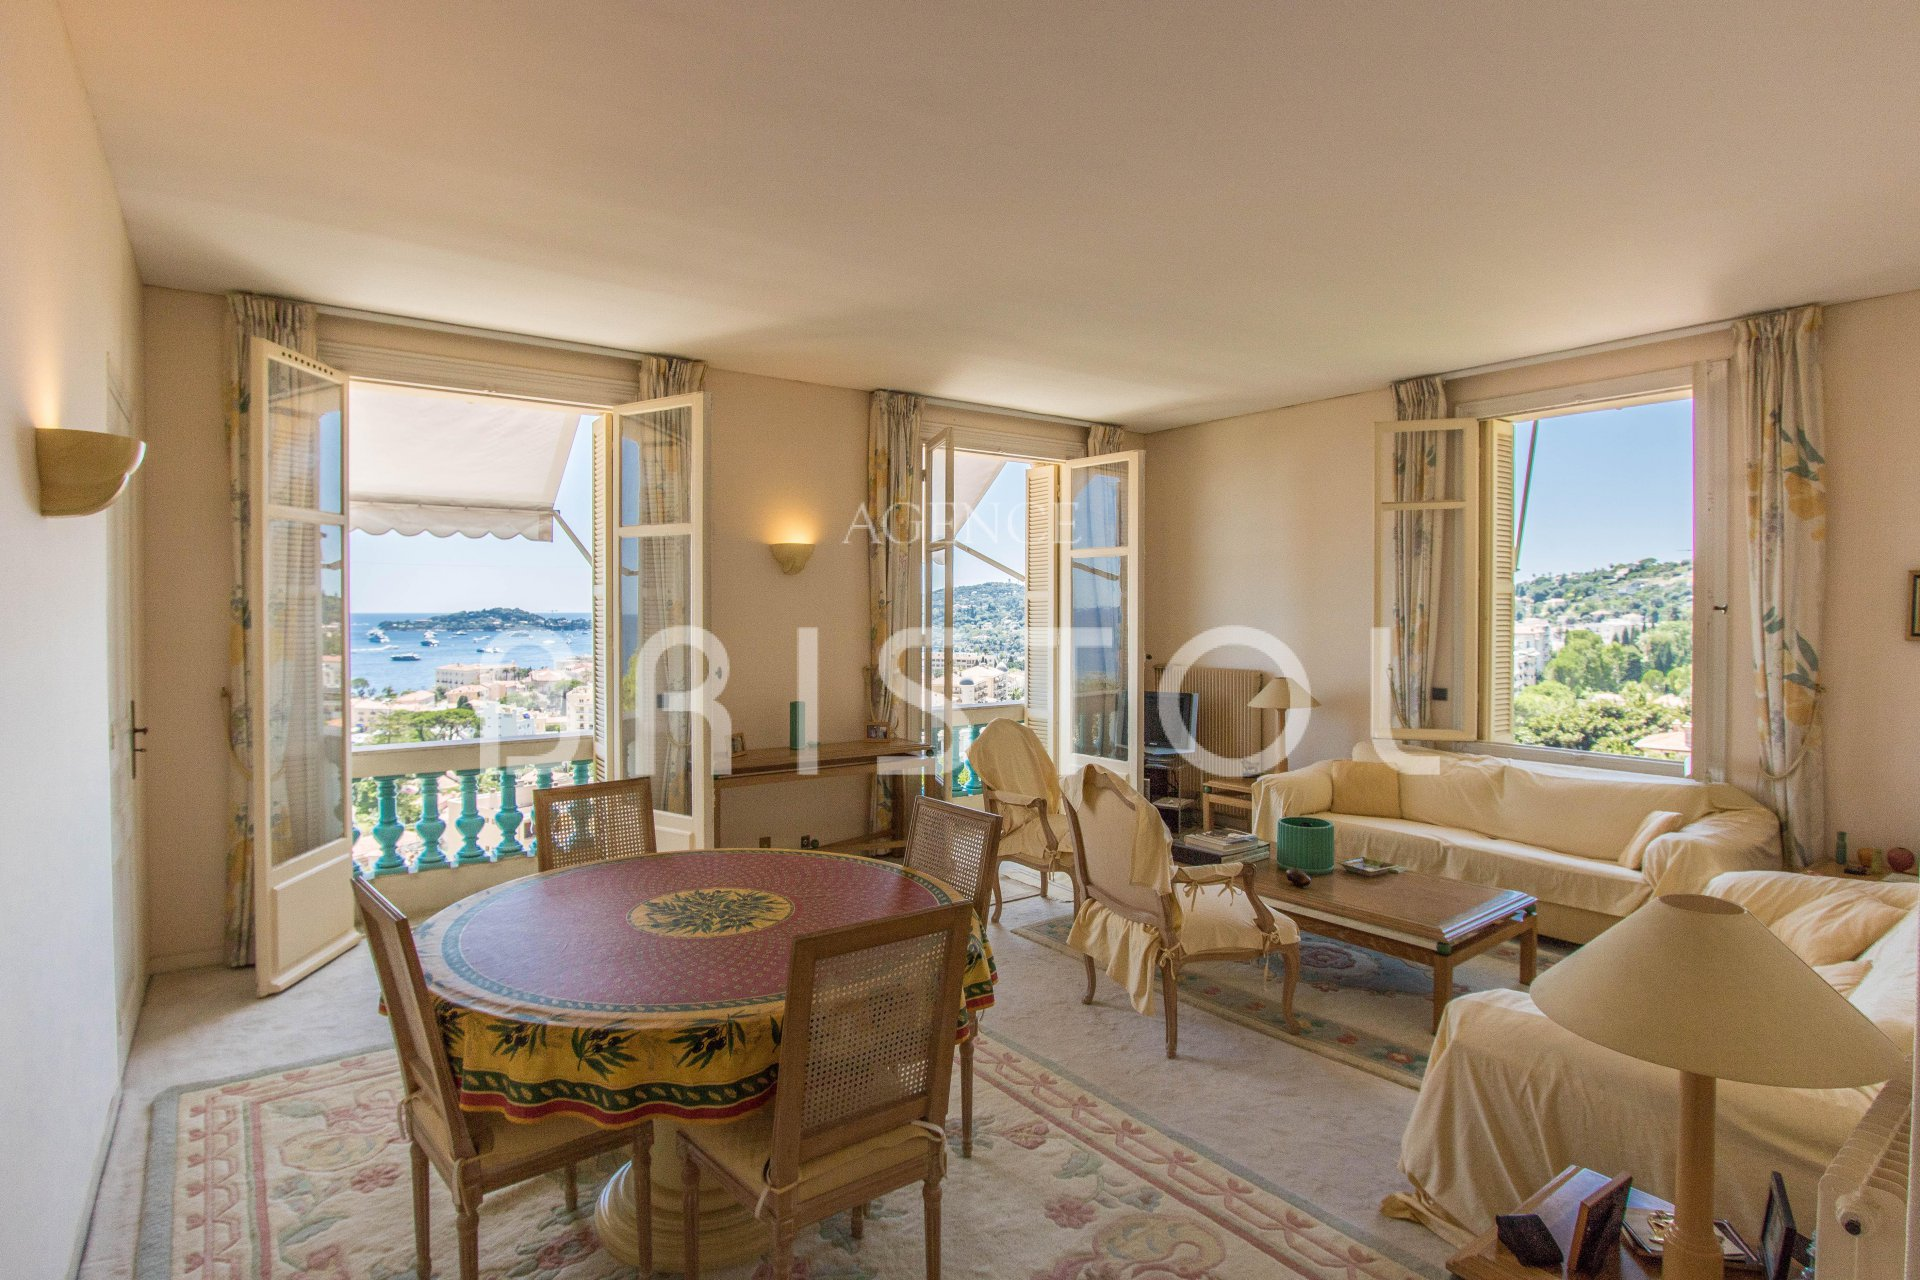 Belle Epoque apartment for sale with panoramic sea view in Beaulieu sur Mer